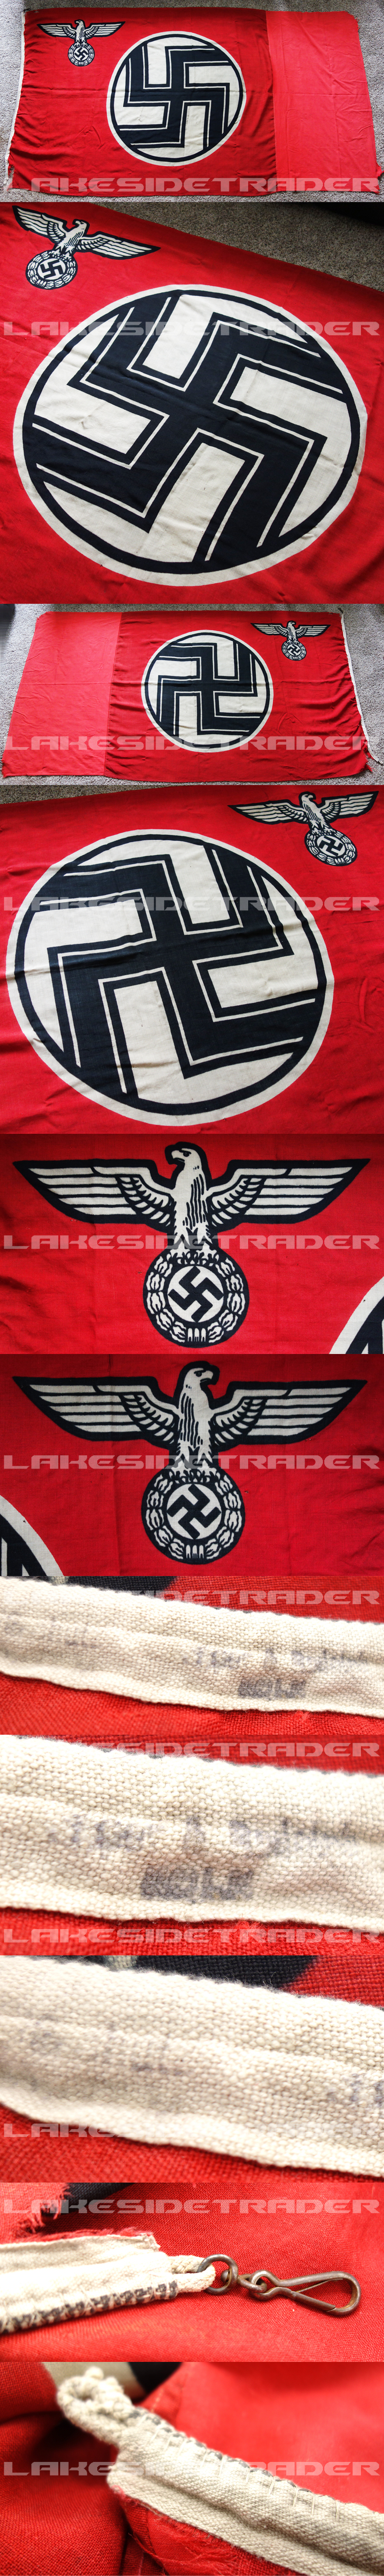 Large State Service Flag by Küpper & Rudolph